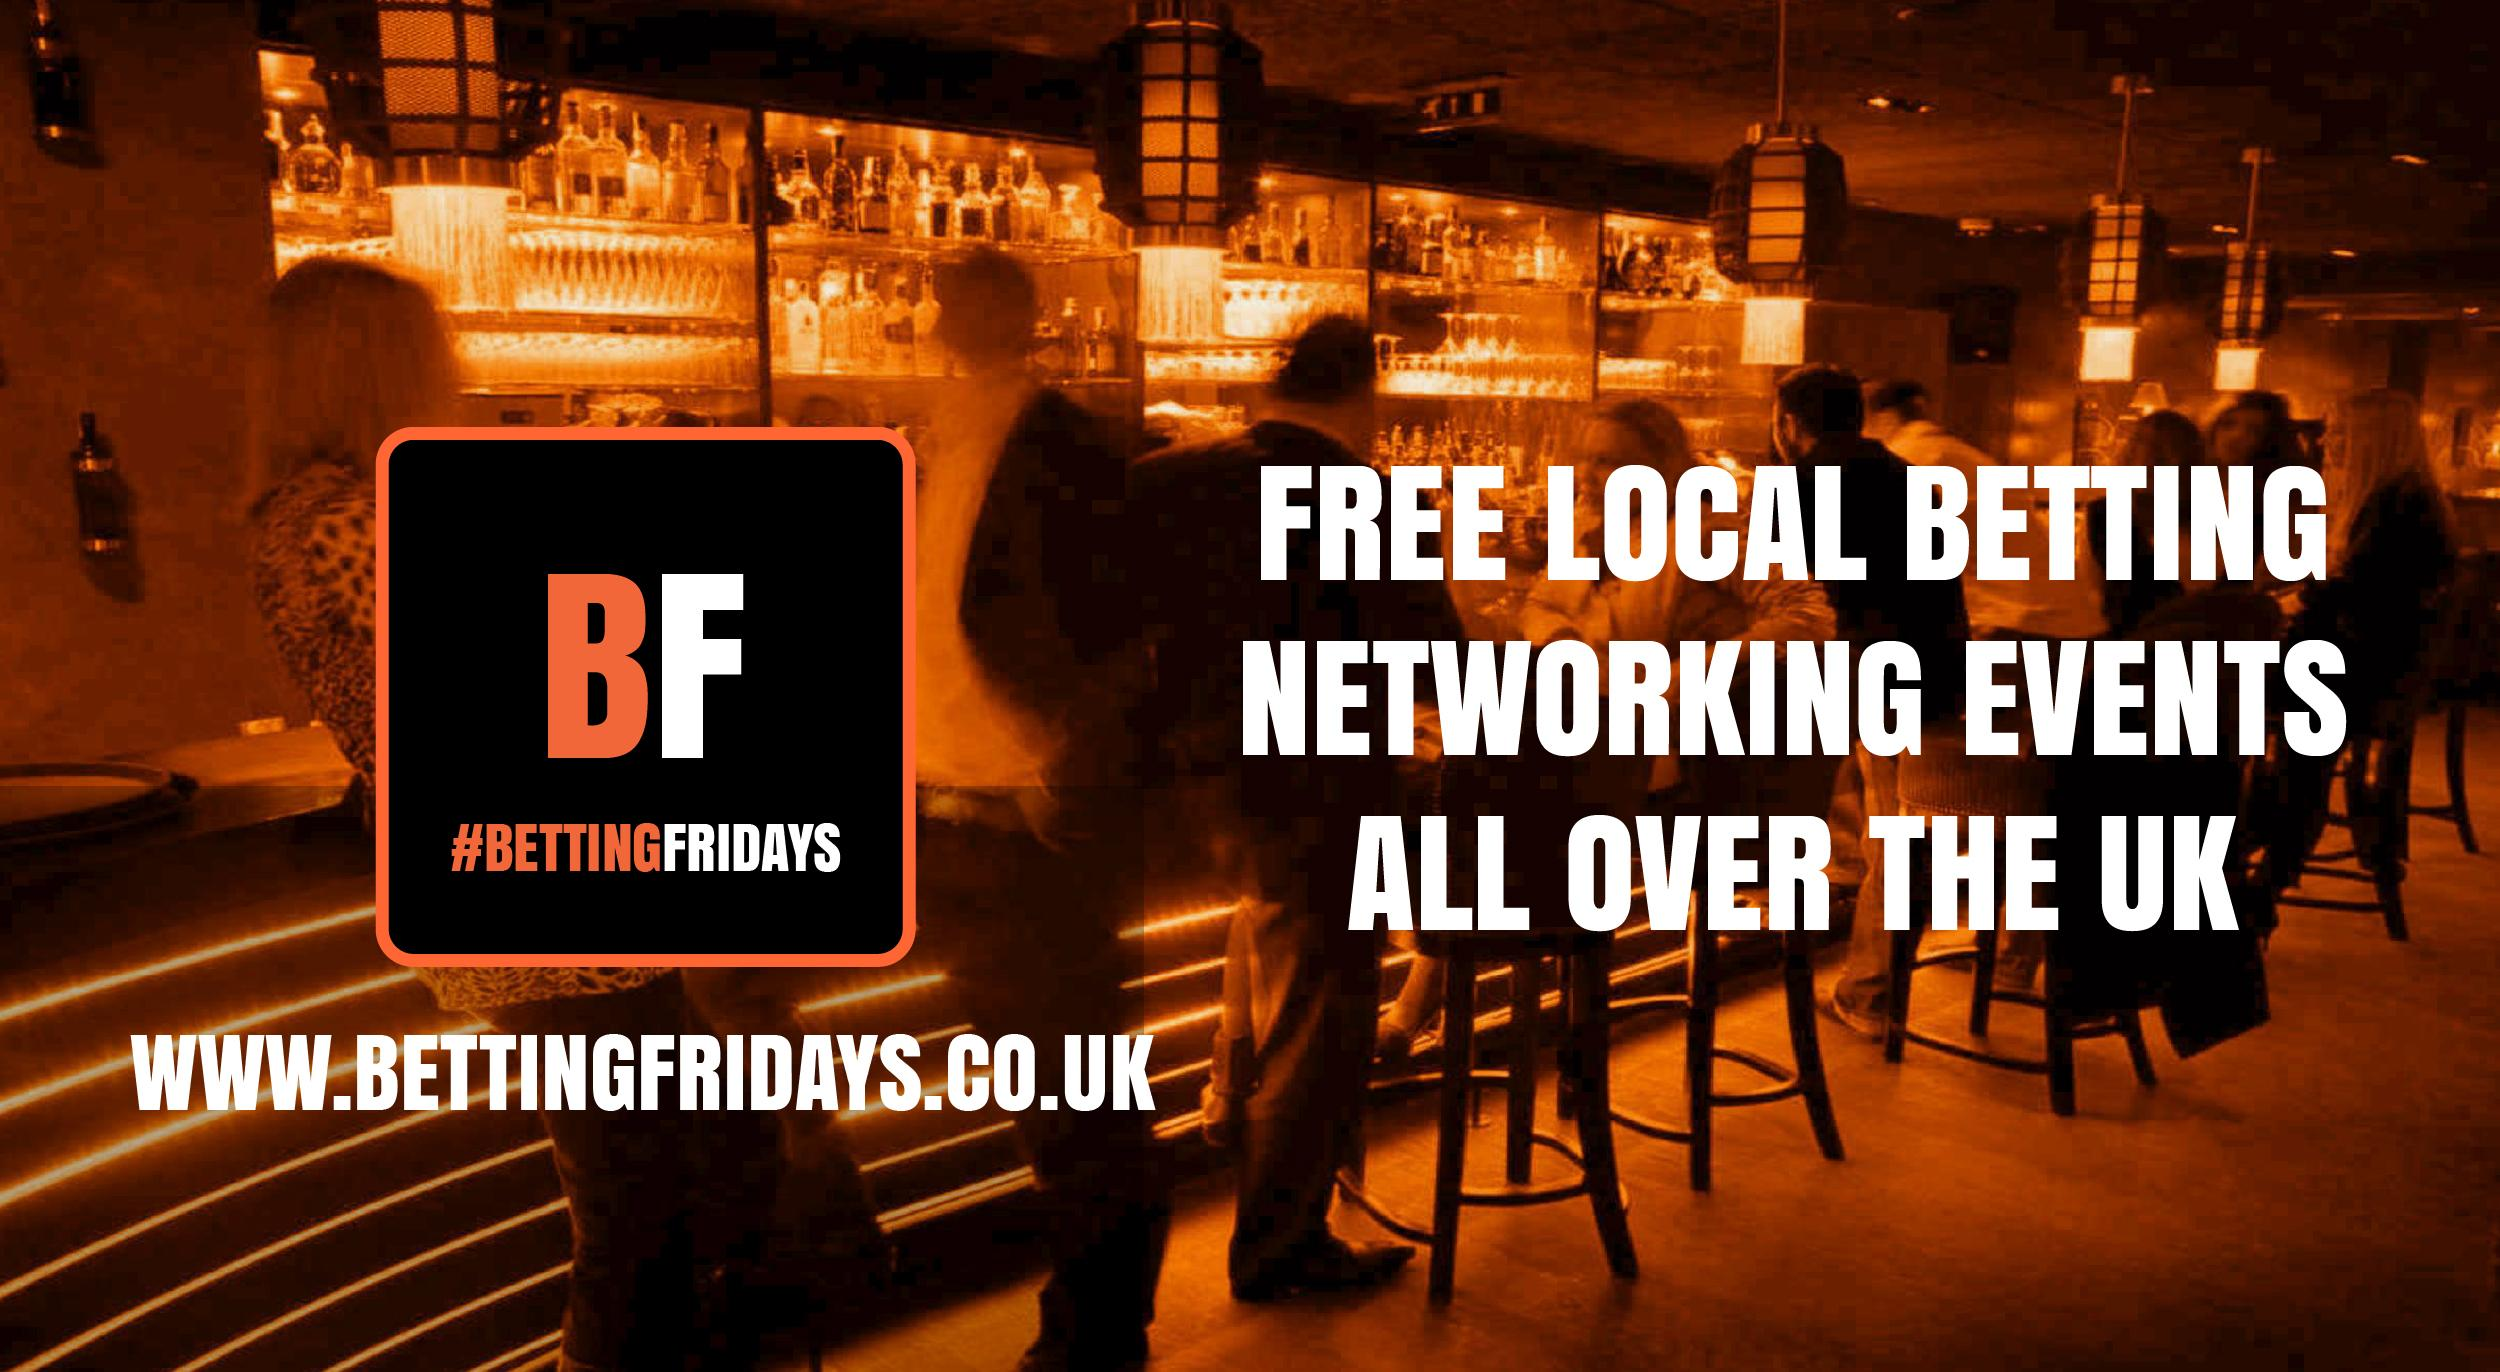 Betting Fridays! Free betting networking event in Aldershot